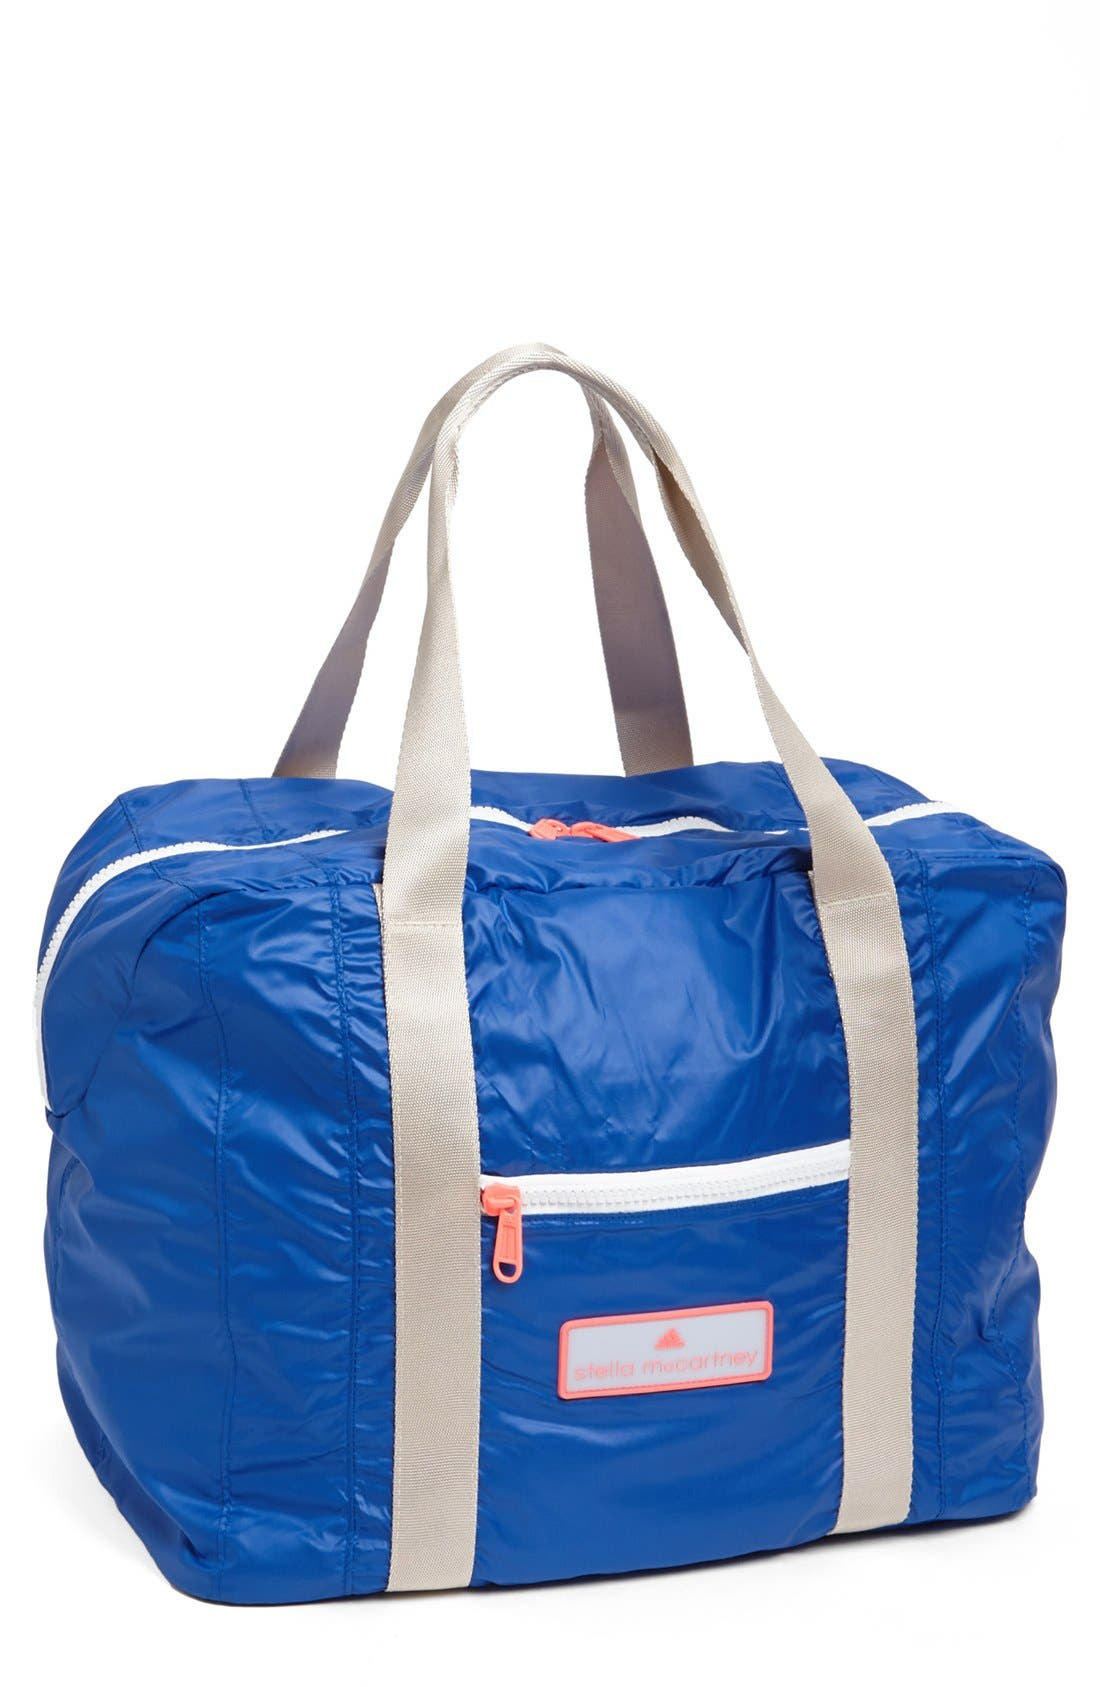 Main Image - adidas by Stella McCartney 'Big Carry On' Bag